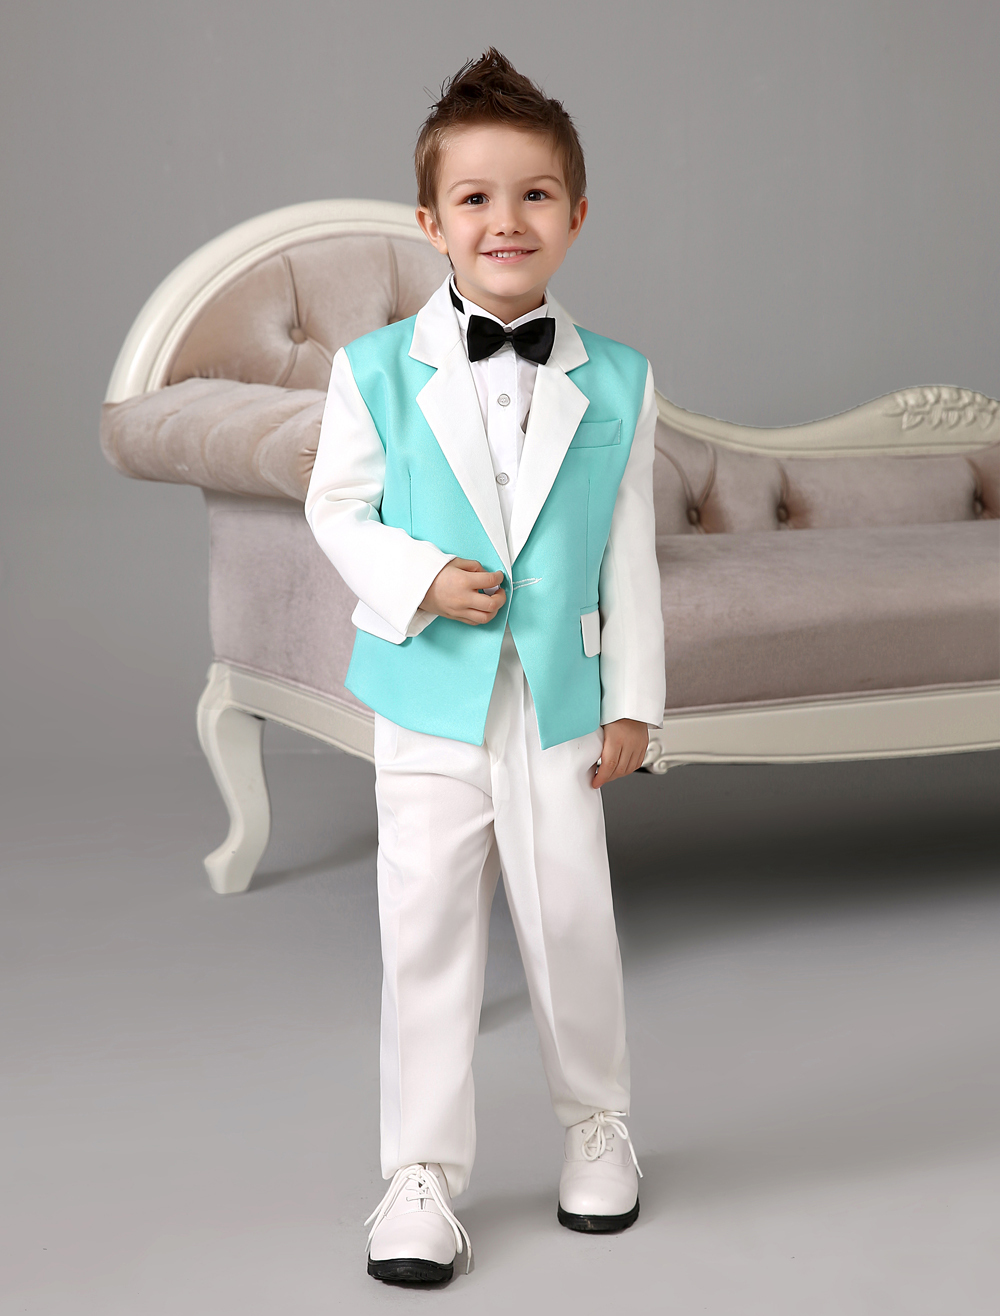 Four Pieces Luxurious formal green and white boys suits Ring Bearer Suits kids Tuxedo With Black Bow Tie boys outfit suits(China (Mainland))